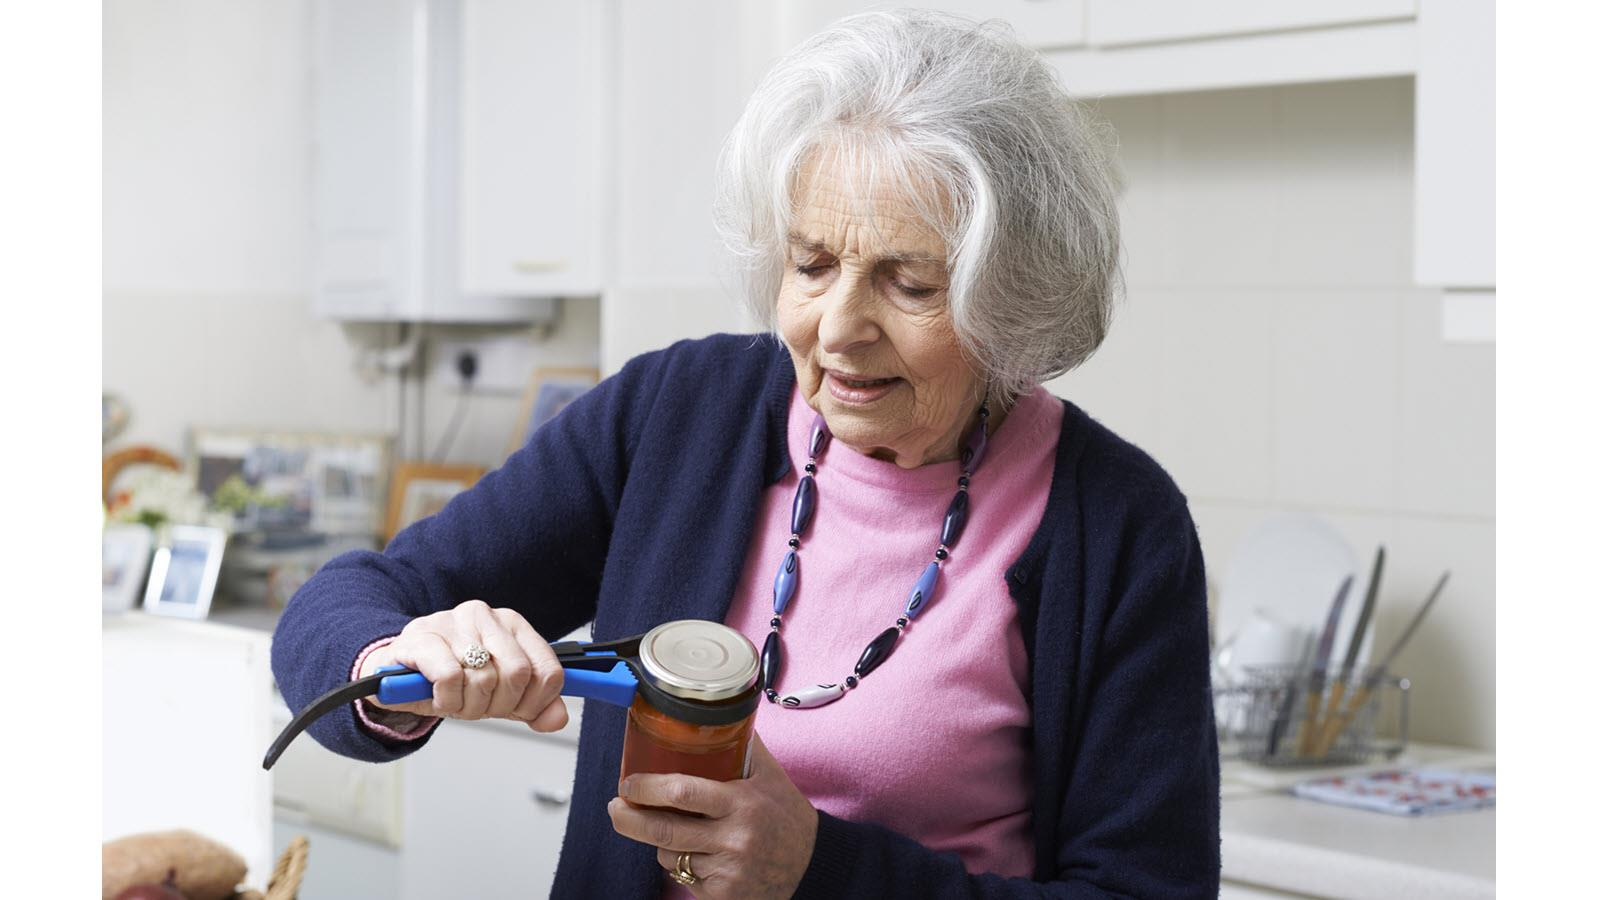 a gray haired older woman uses a tool to help open a jar